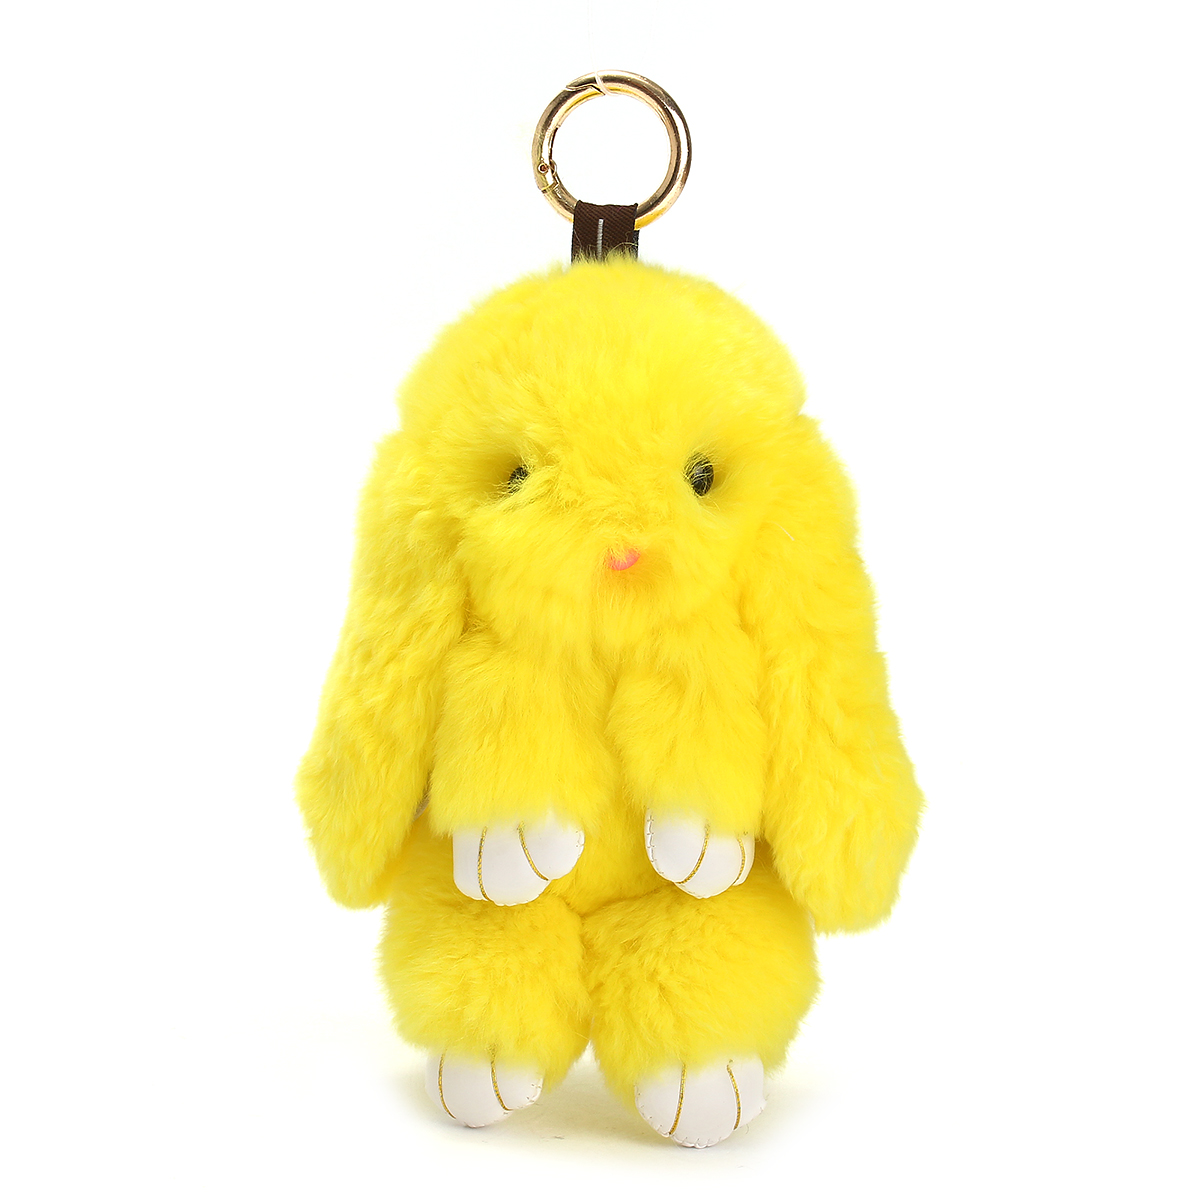 130mm Faux Rabbit Fur Keychain Bunny Ball Doll Key Ring Charm Handbag Pendant